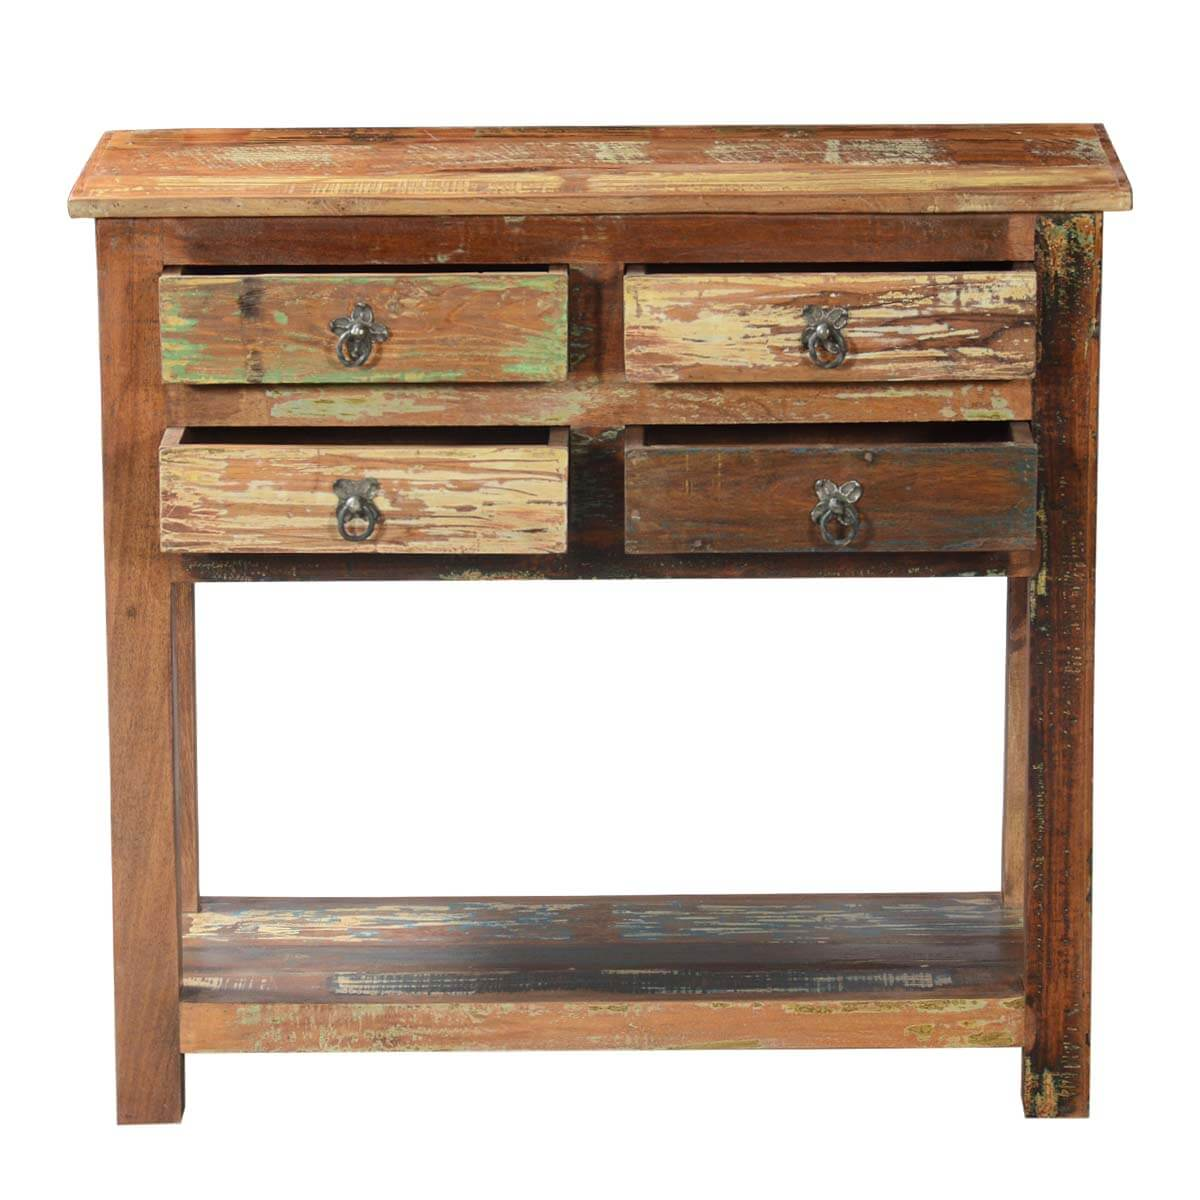 Ashland rustic reclaimed wood drawer hallway console table